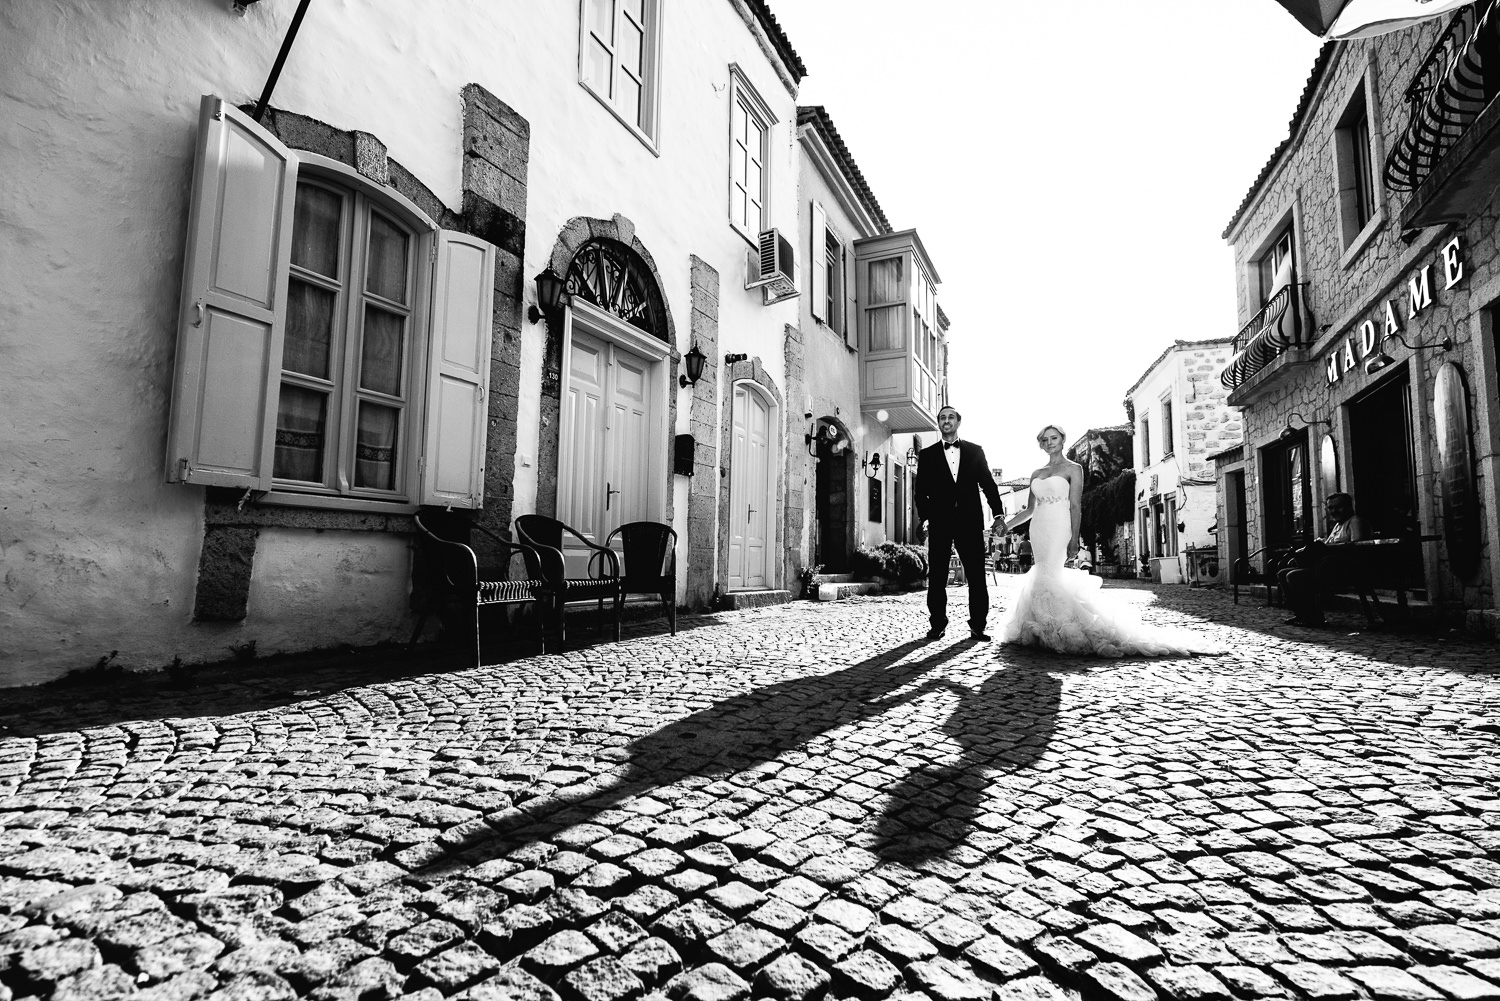 Turkey Wedding - Black and White photo in the city